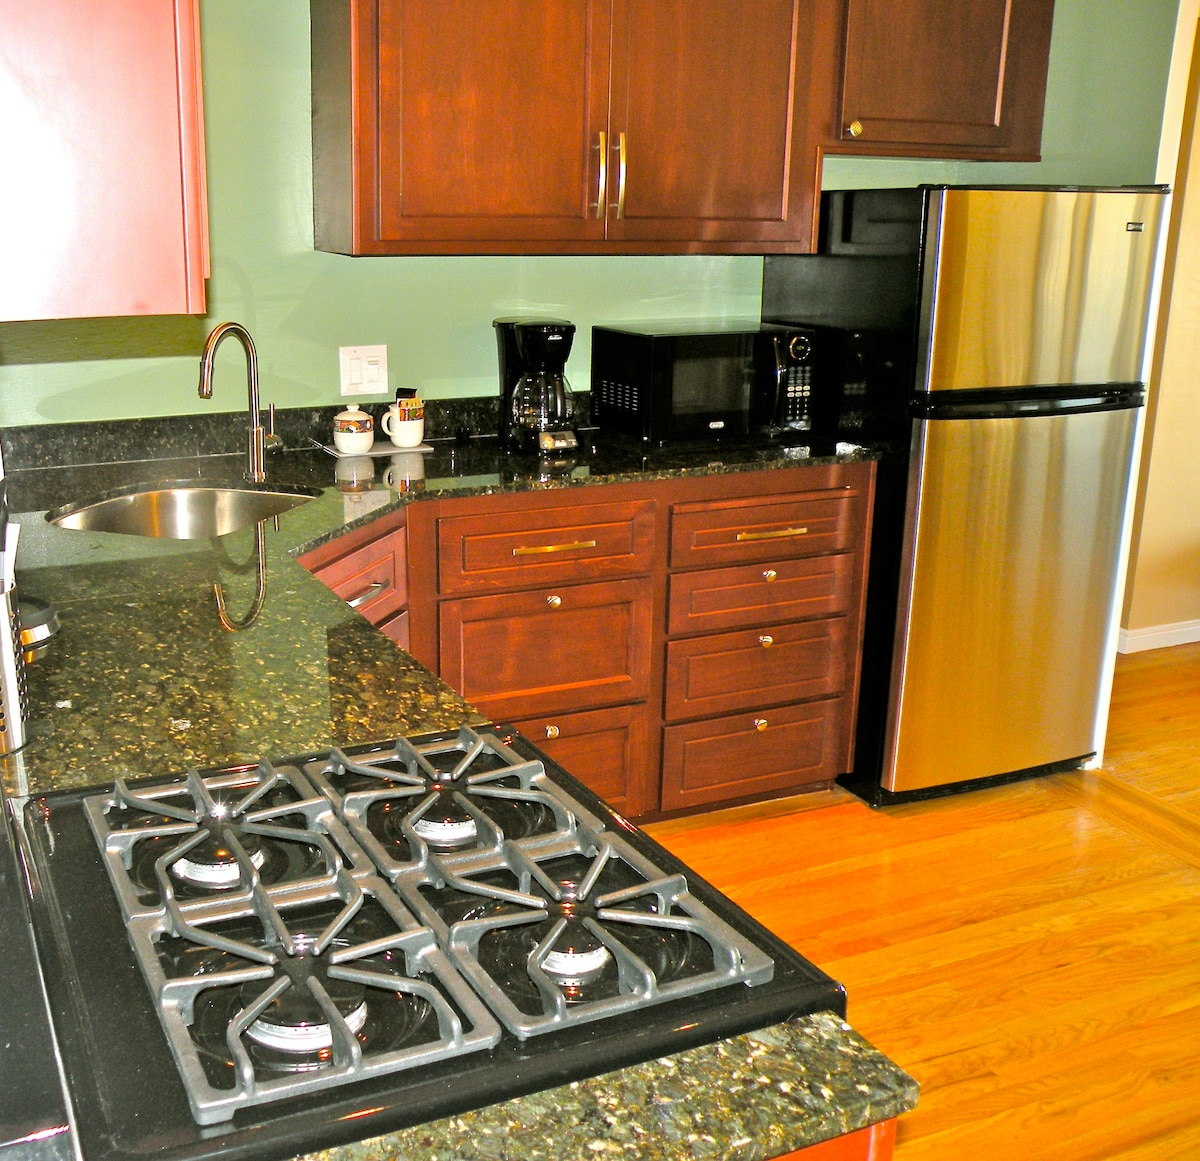 A chef's kitchen for your use.. Fresh bread, organic produce, and gourmet foods available nearby,